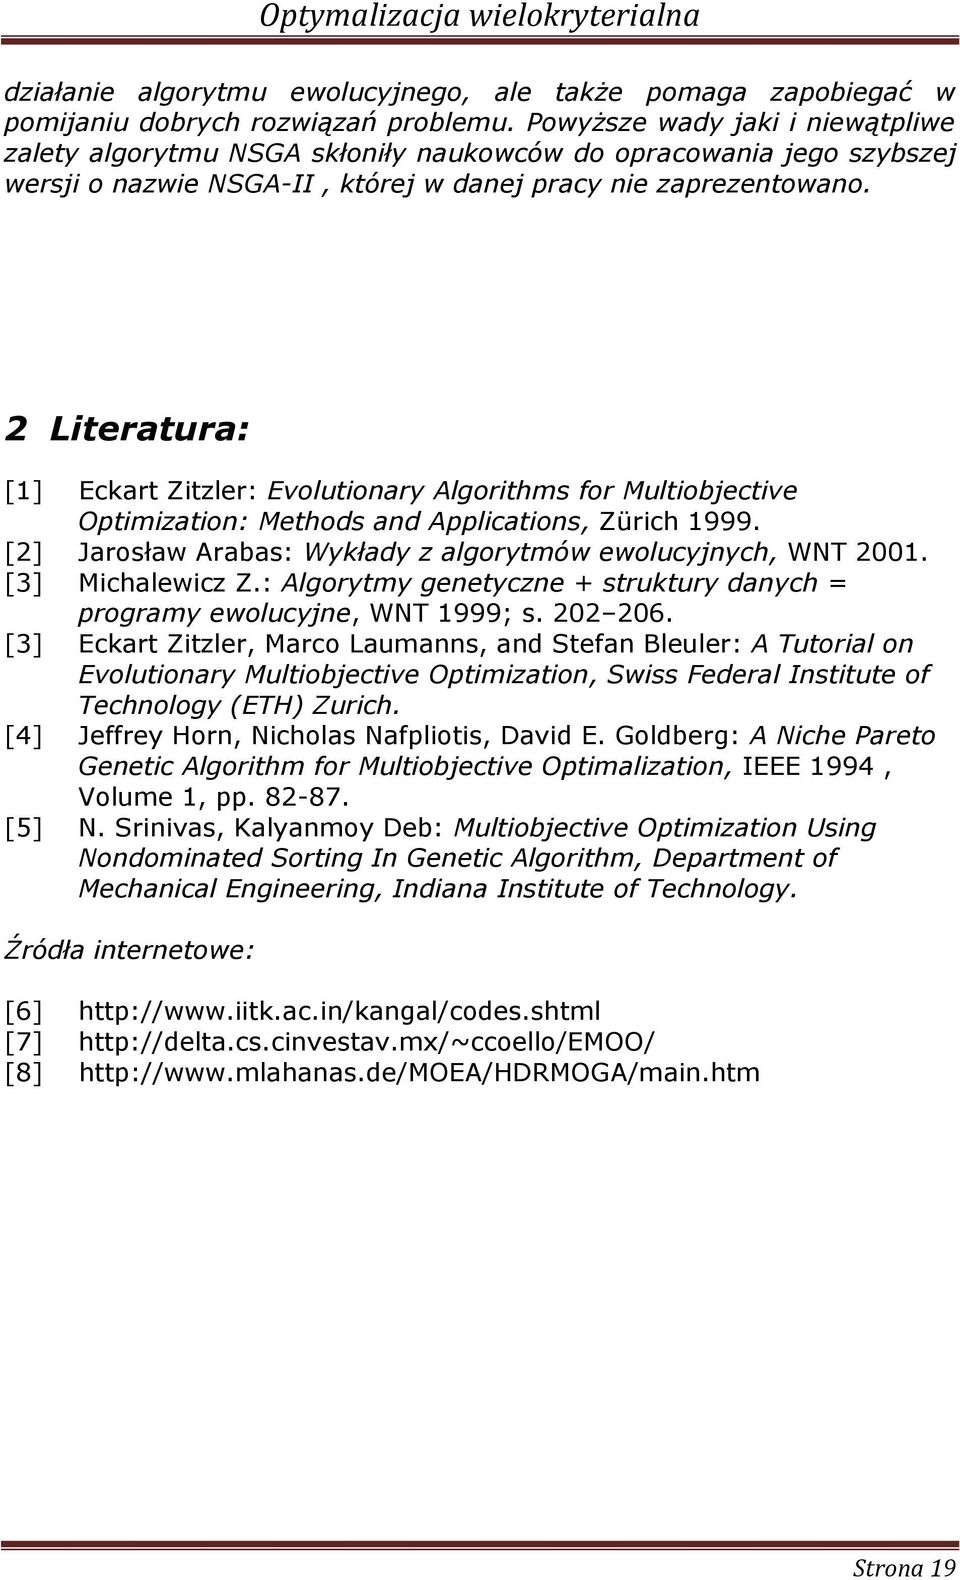 2 Lteratura: [1] Eckart Ztzler: Evolutonary Algorthms for Multobjectve Optmzaton: Methods and Applcatons, Zürch 1999. [2] Jarosław Arabas: Wykłady z algorytmów ewolucyjnych, WNT 2001. [3] Mchalewcz Z.